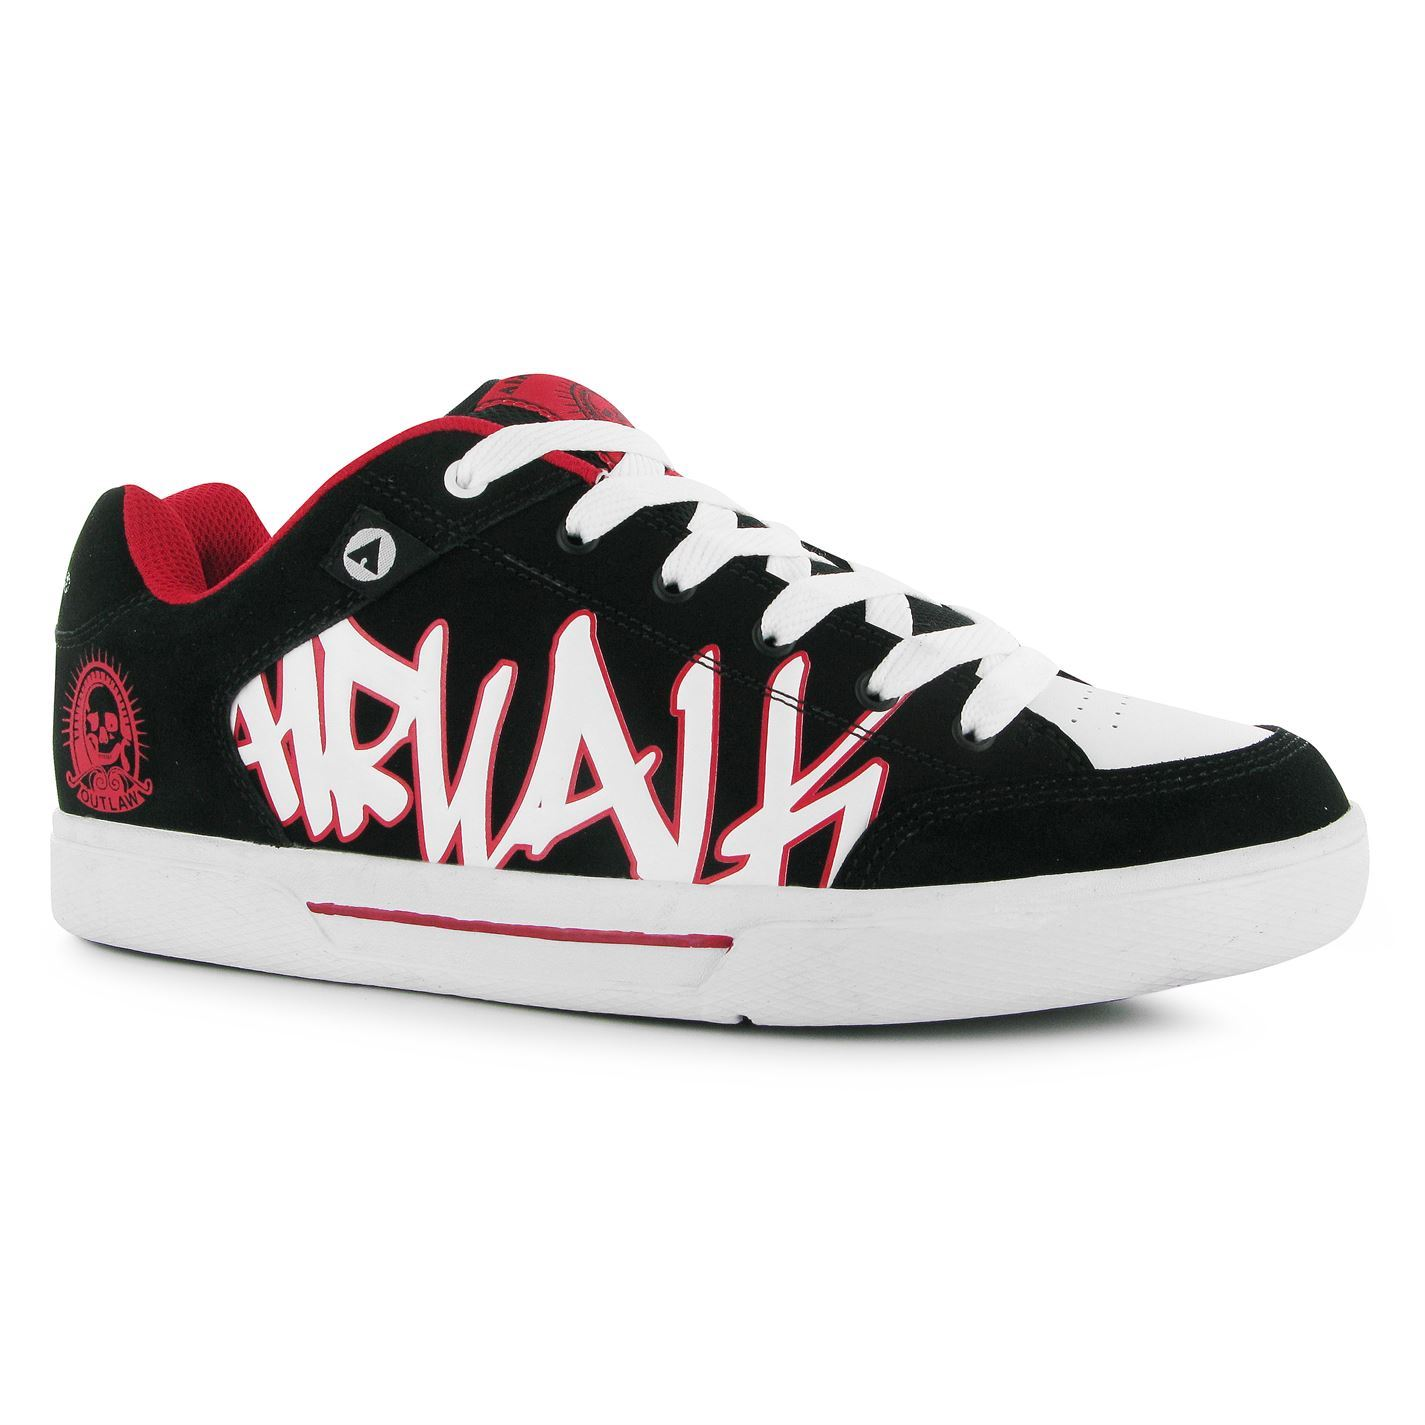 Womens Airwalk Skate Shoes